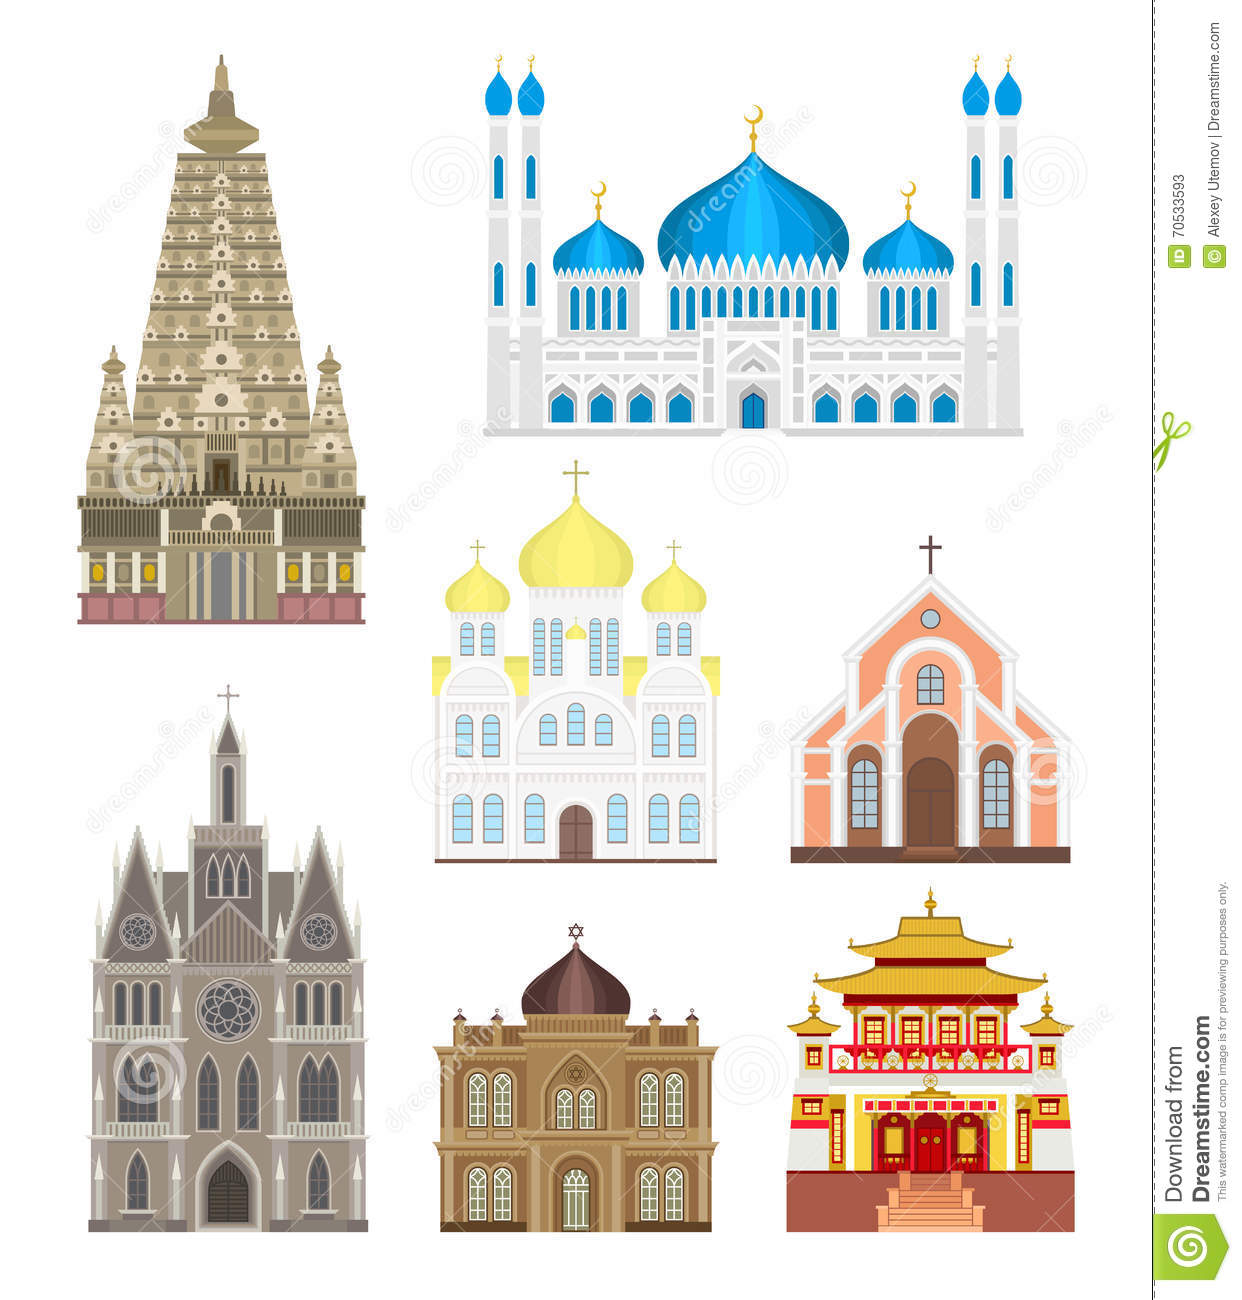 Churches and temples, their architecture